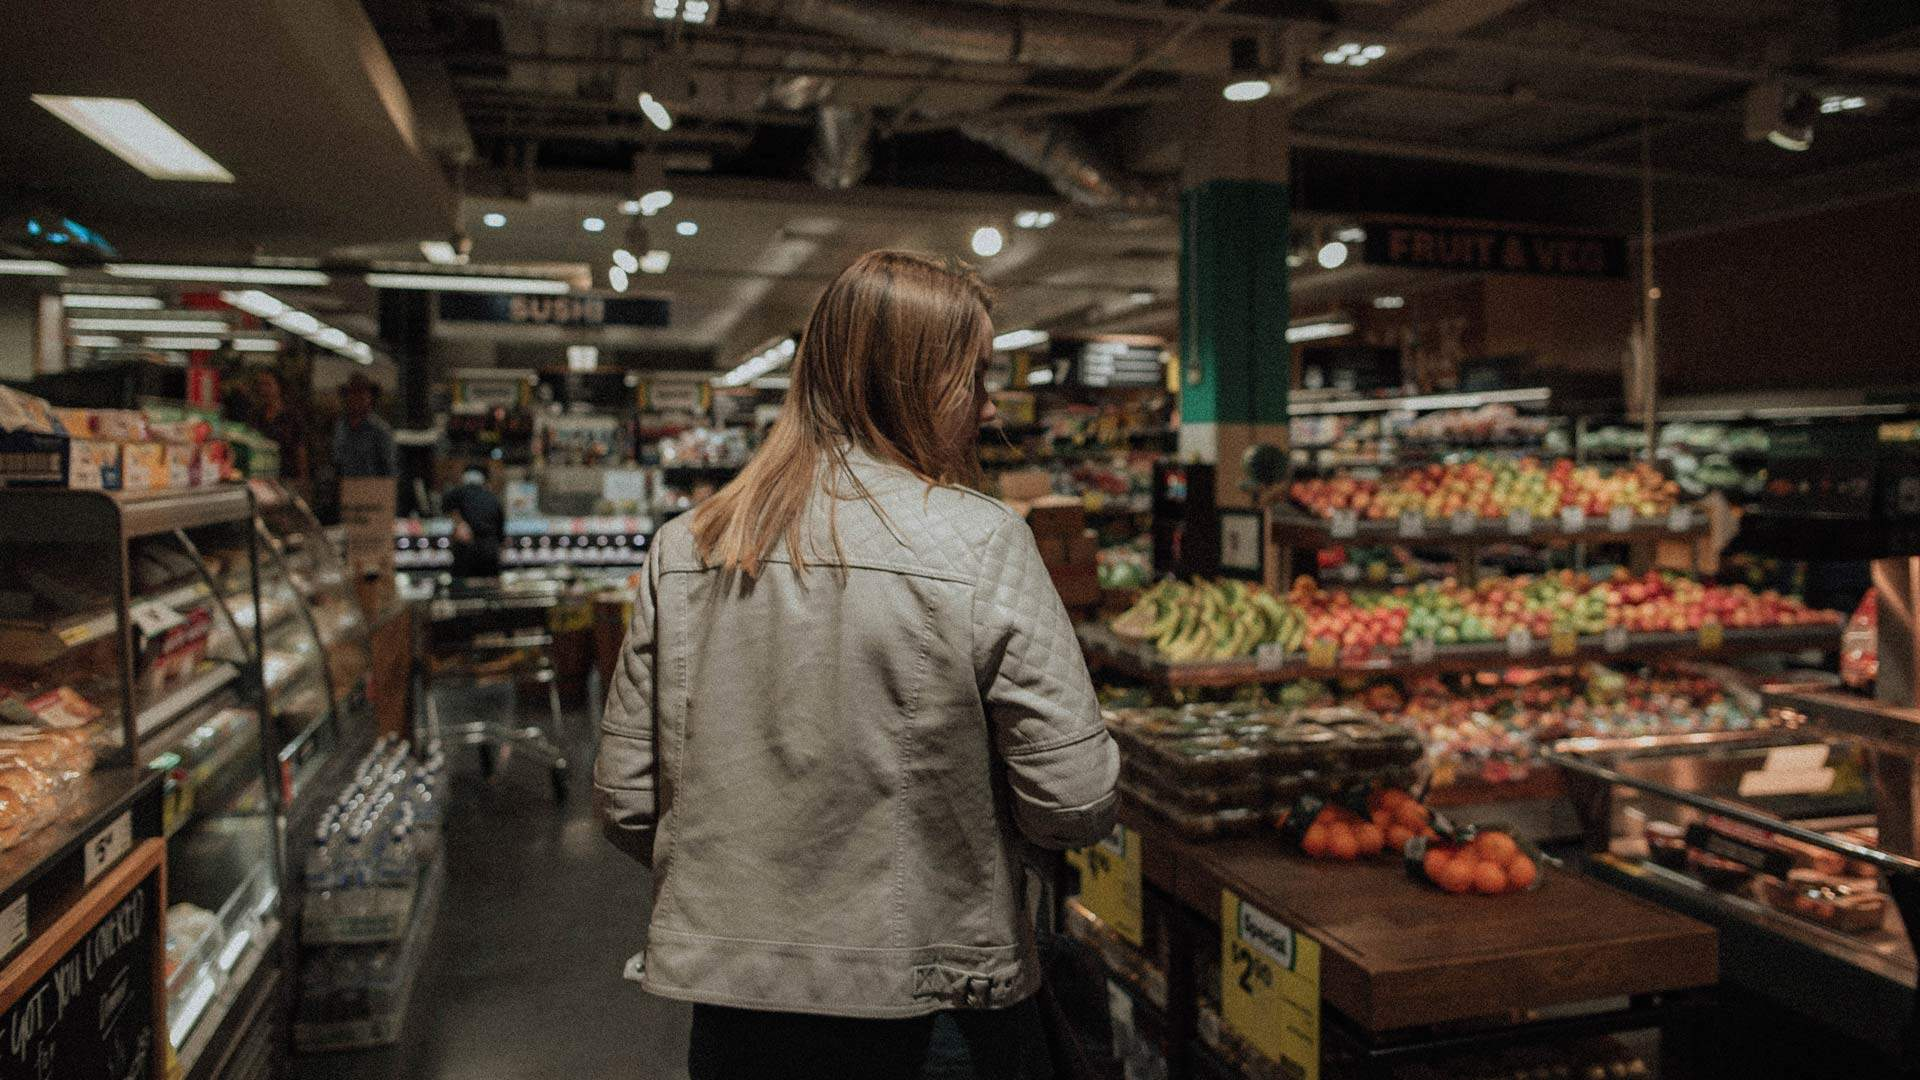 Woolworths Is Trialling Checkout-Free Shopping at One of Its Sydney Stores